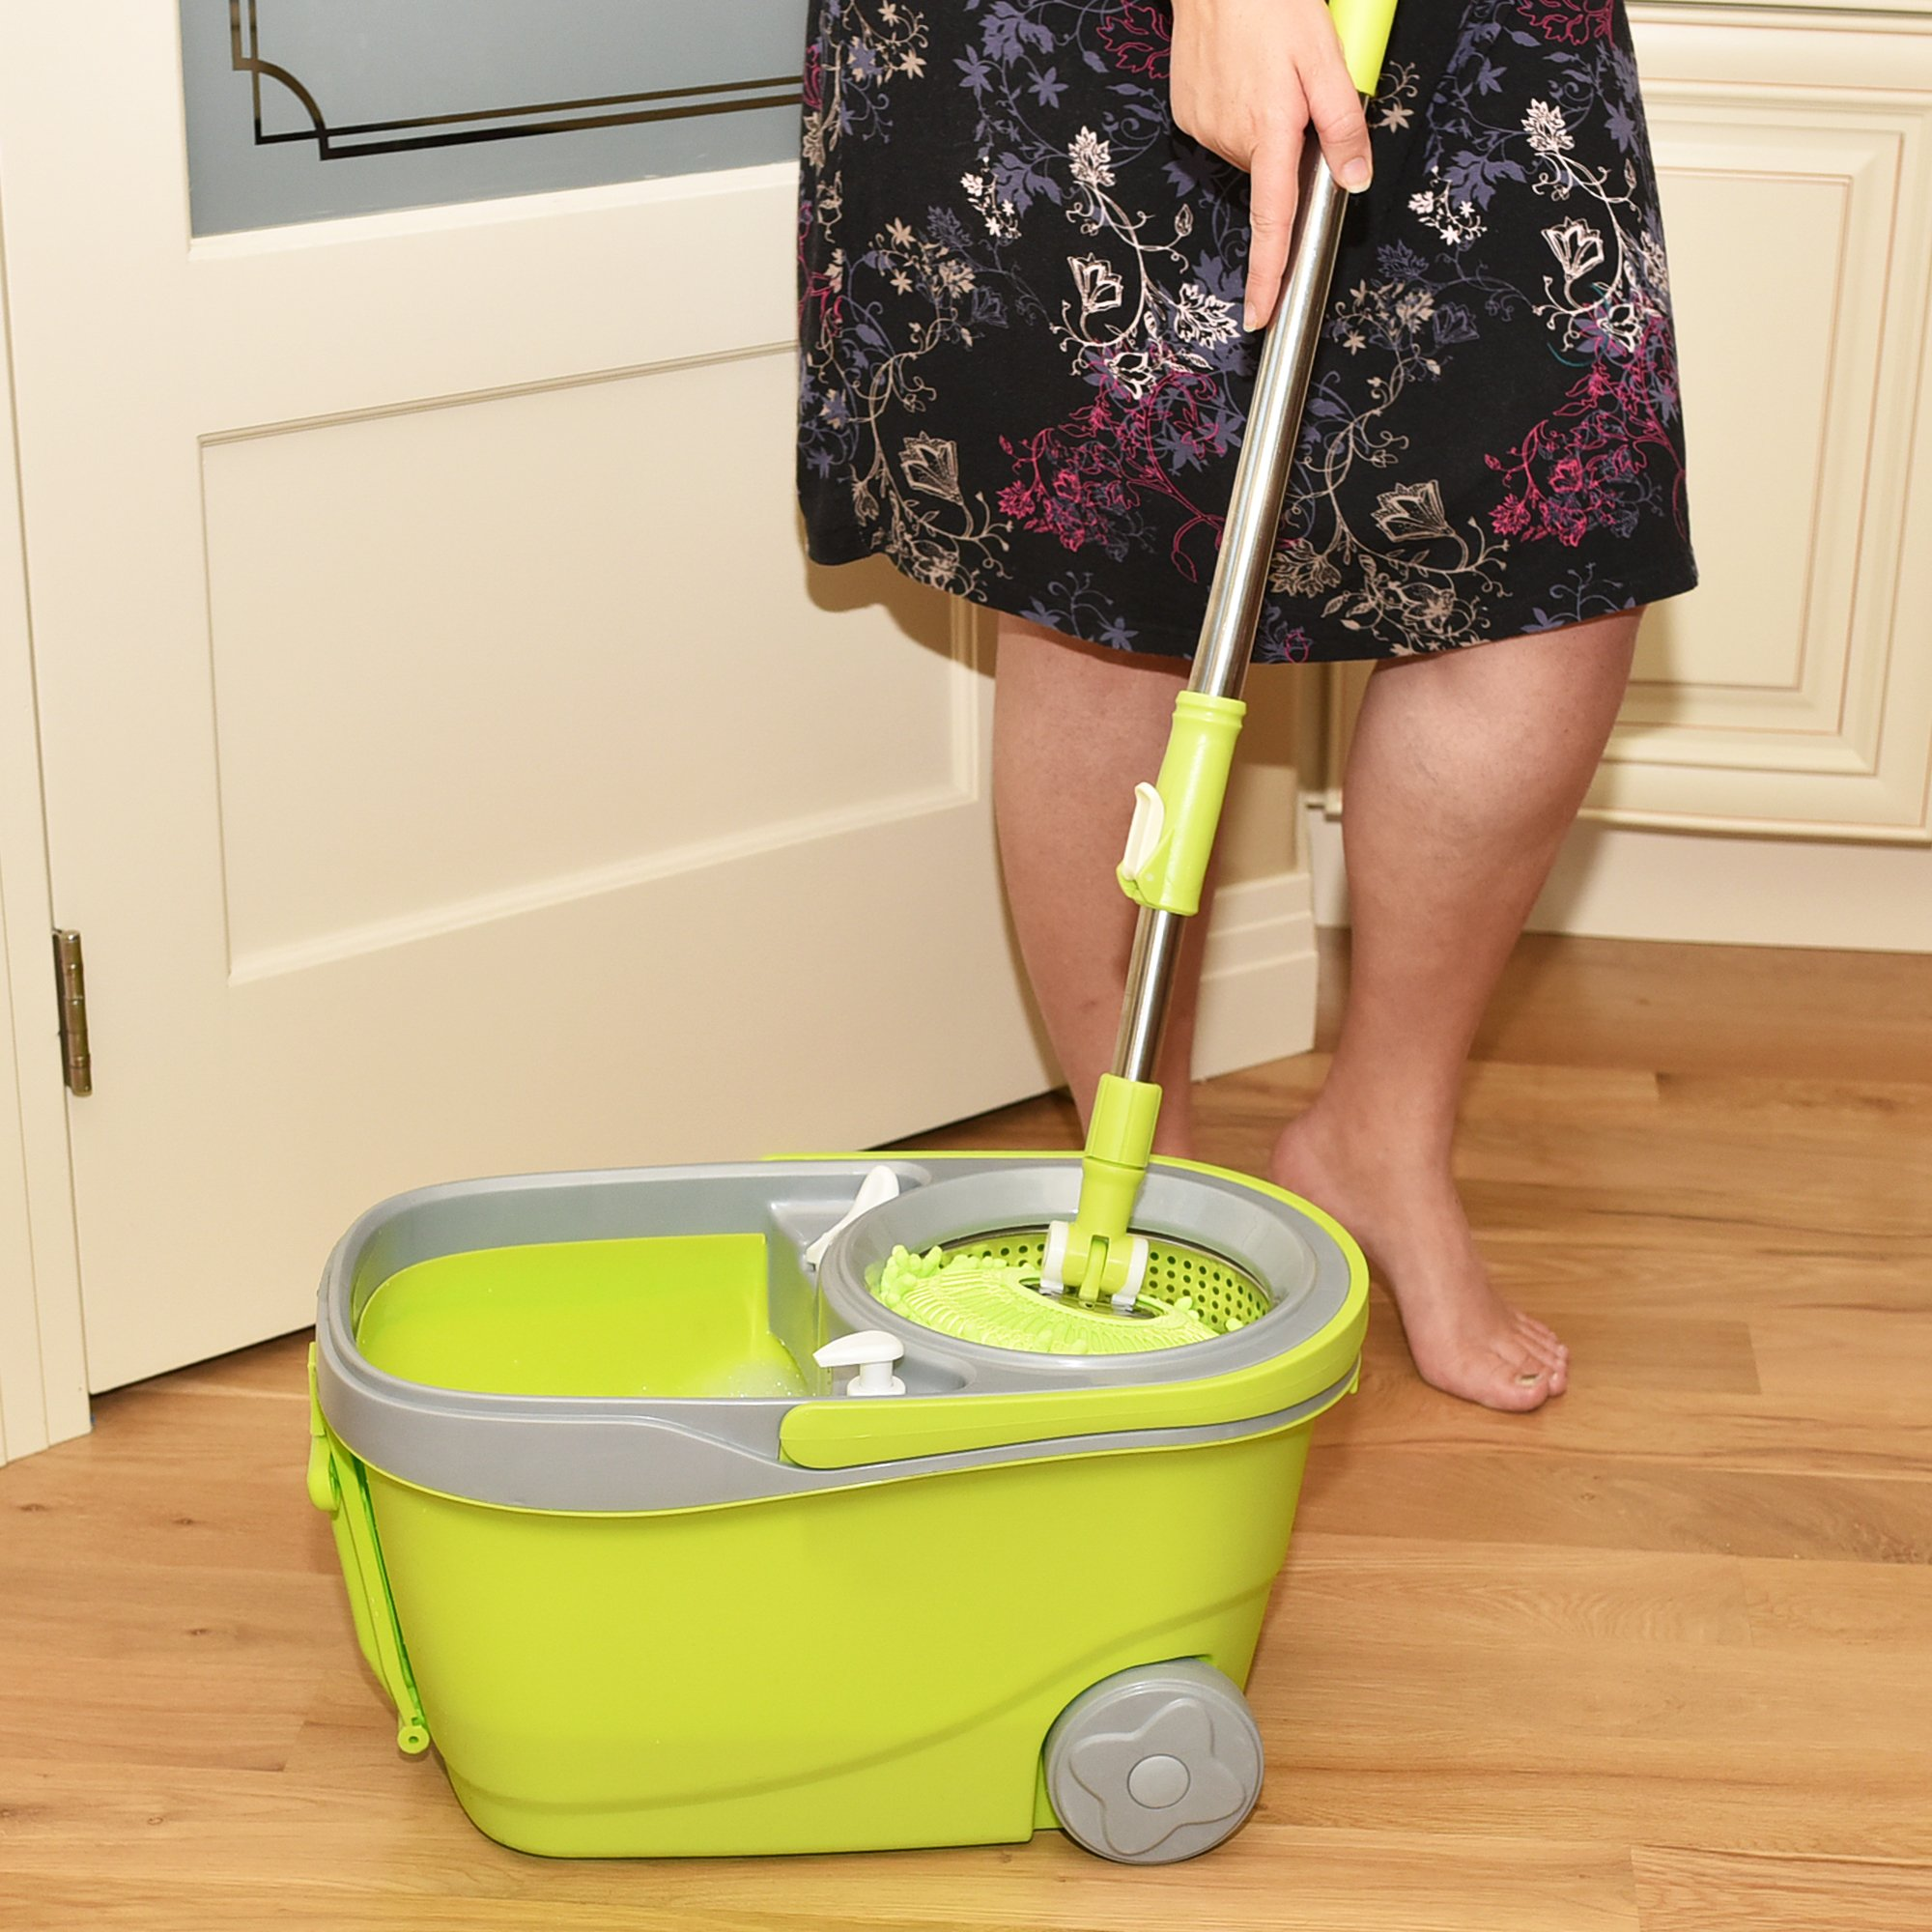 spin mop replacement head instructions